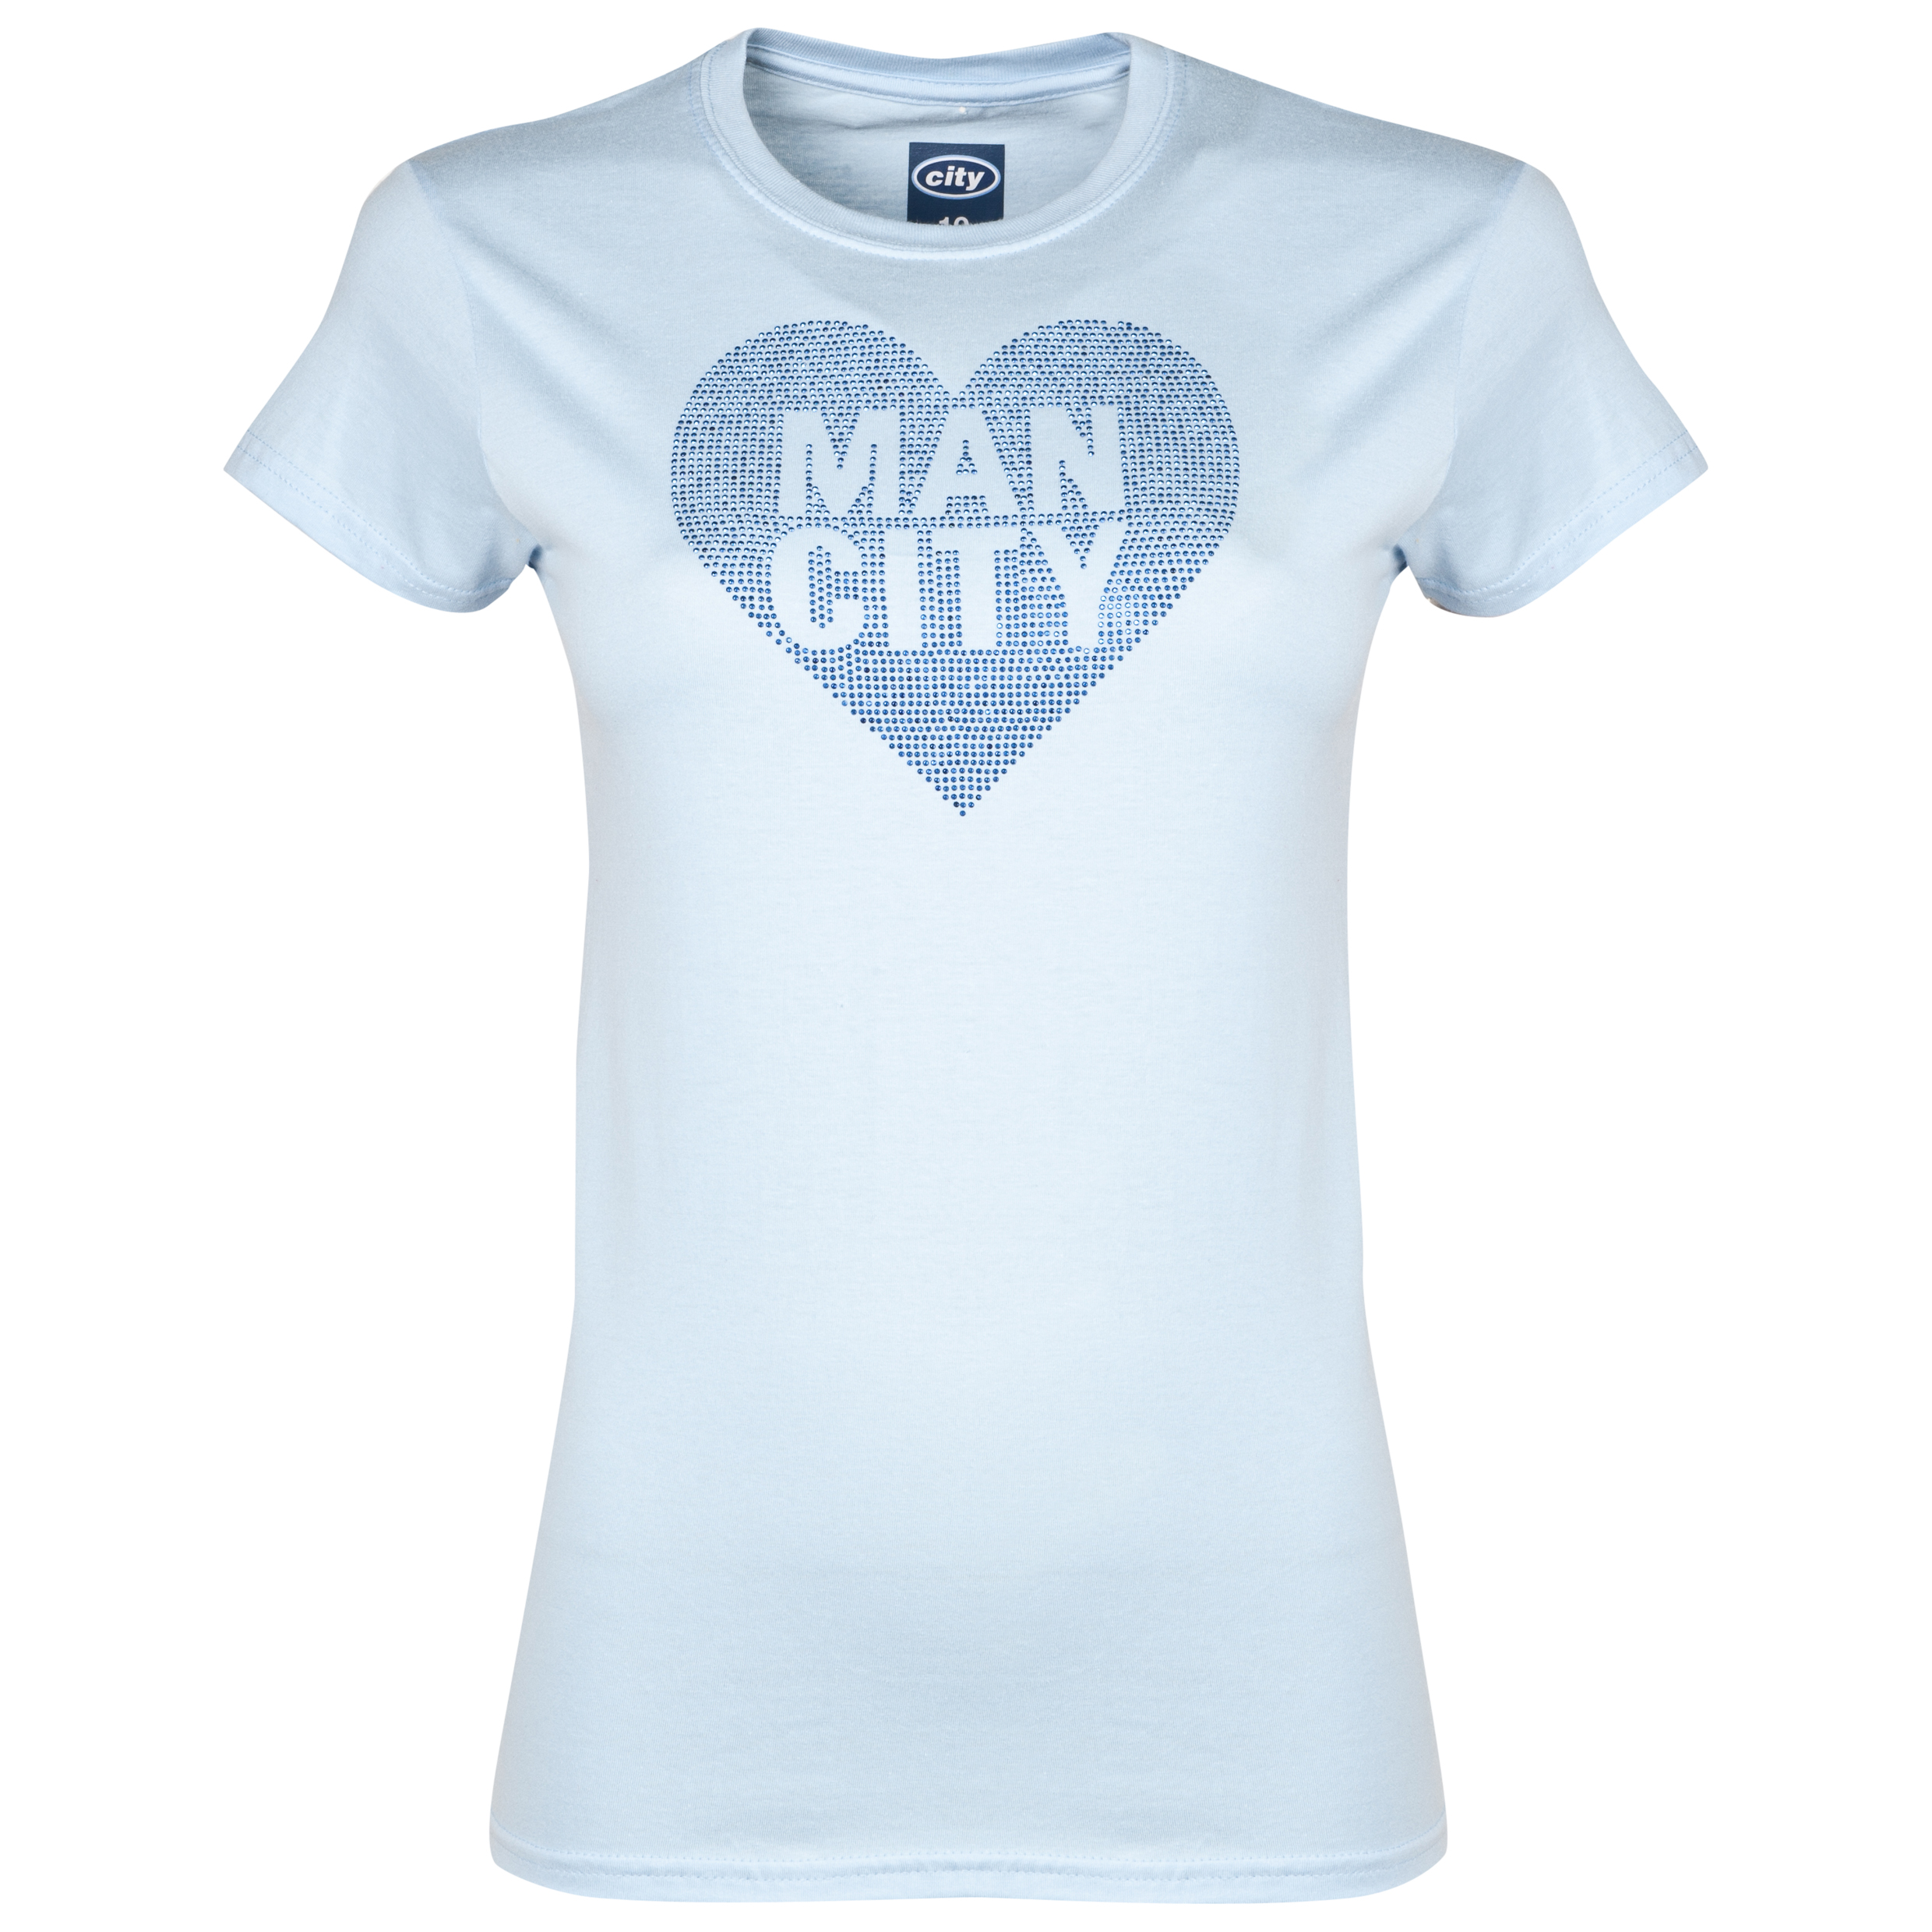 Manchester City Rhinestone T-Shirt Womens Sky Blue